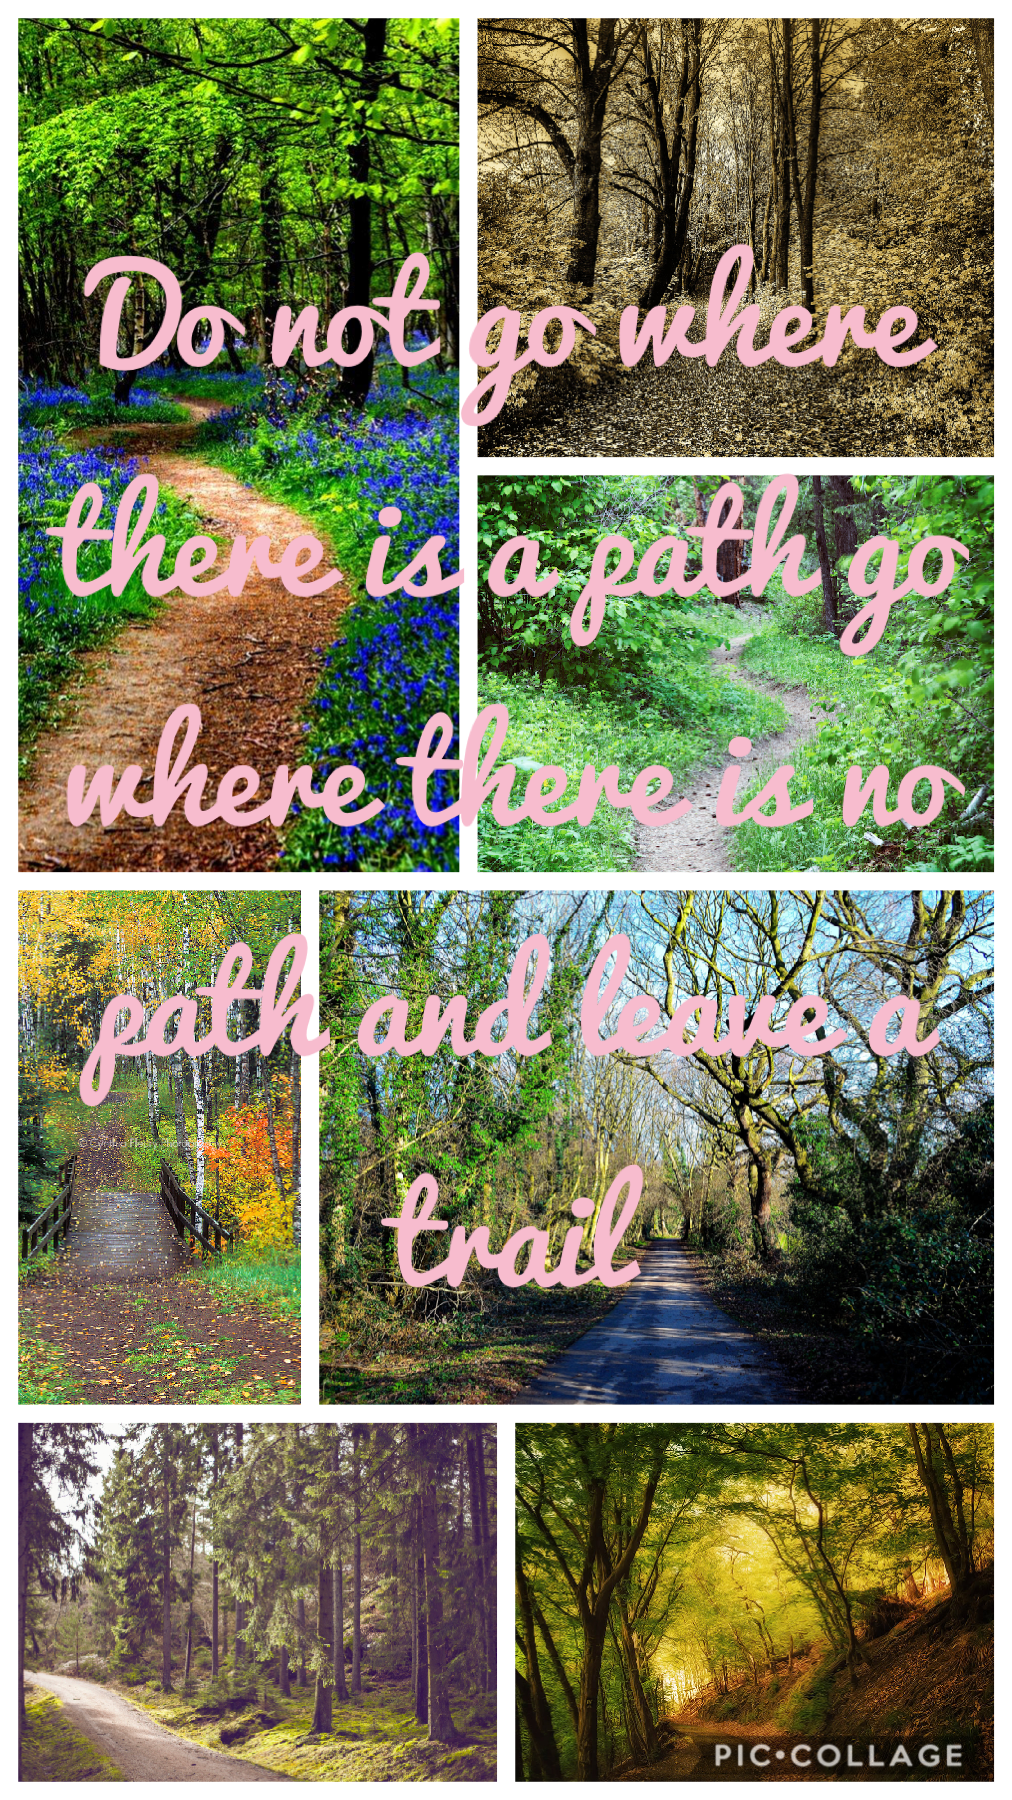 Do not go where there is a path go where there is no path and leave a trail